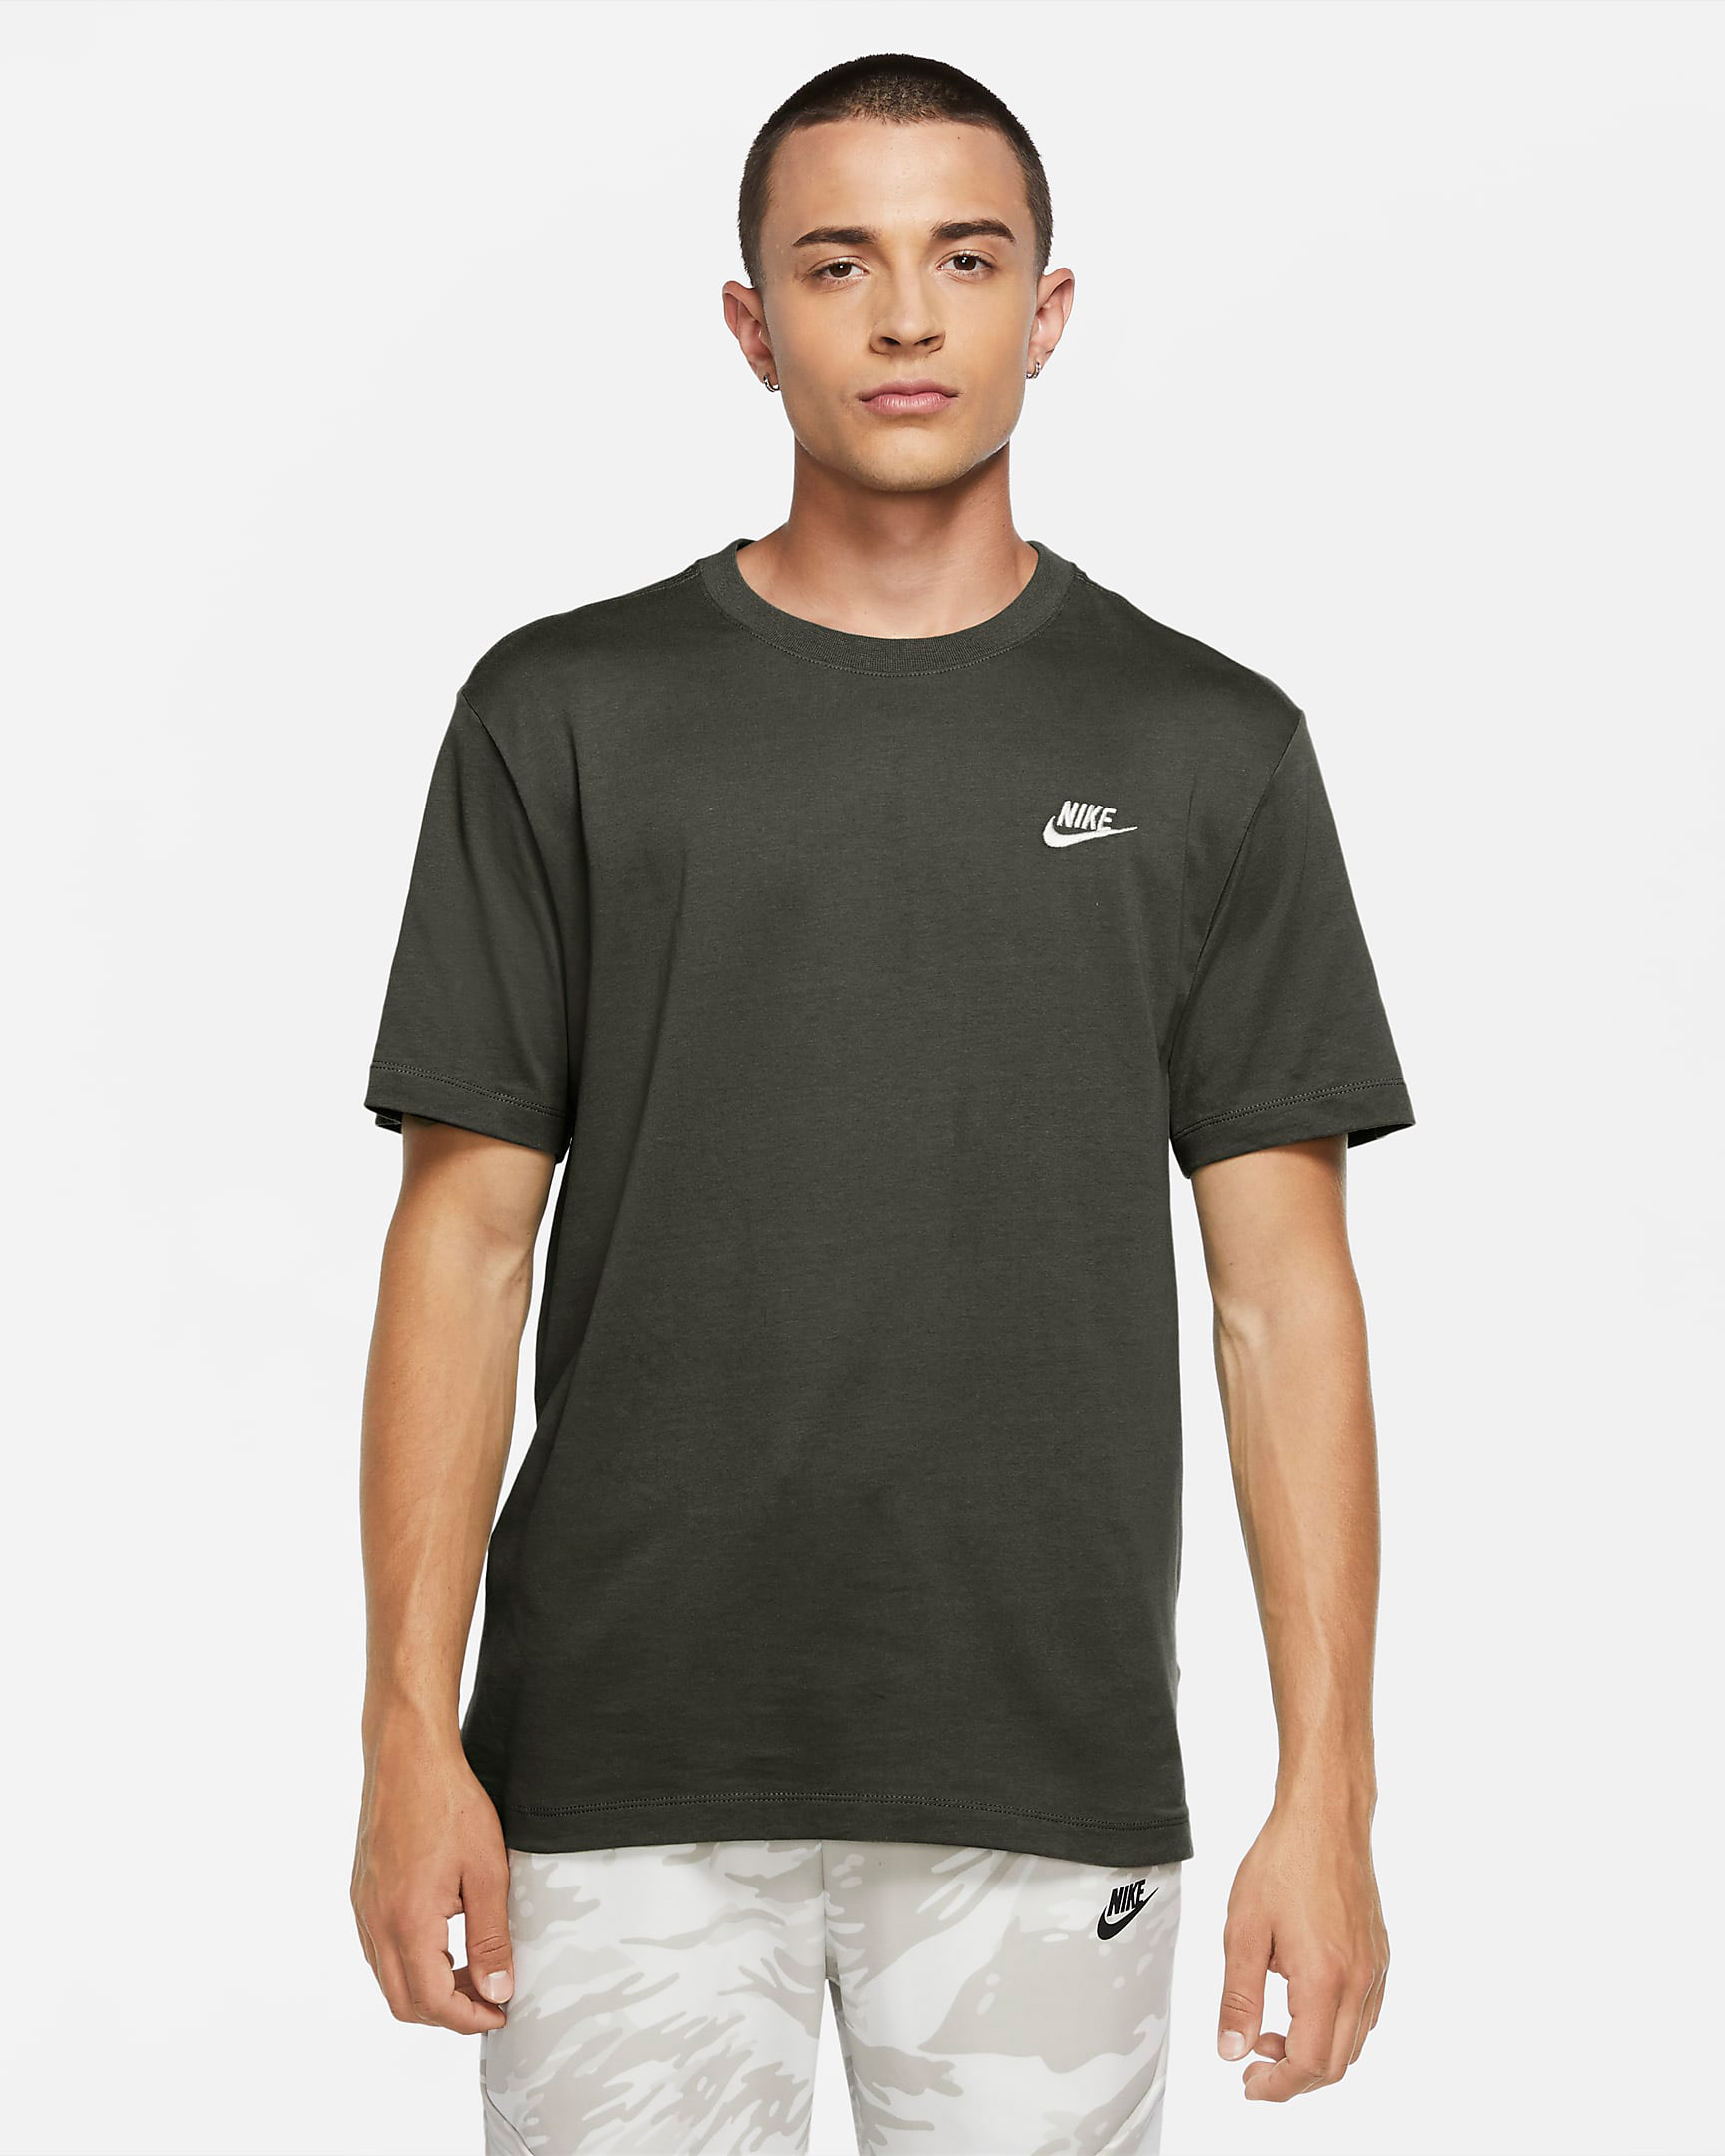 nike-club-t-shirt-twilight-marsh-olive-green